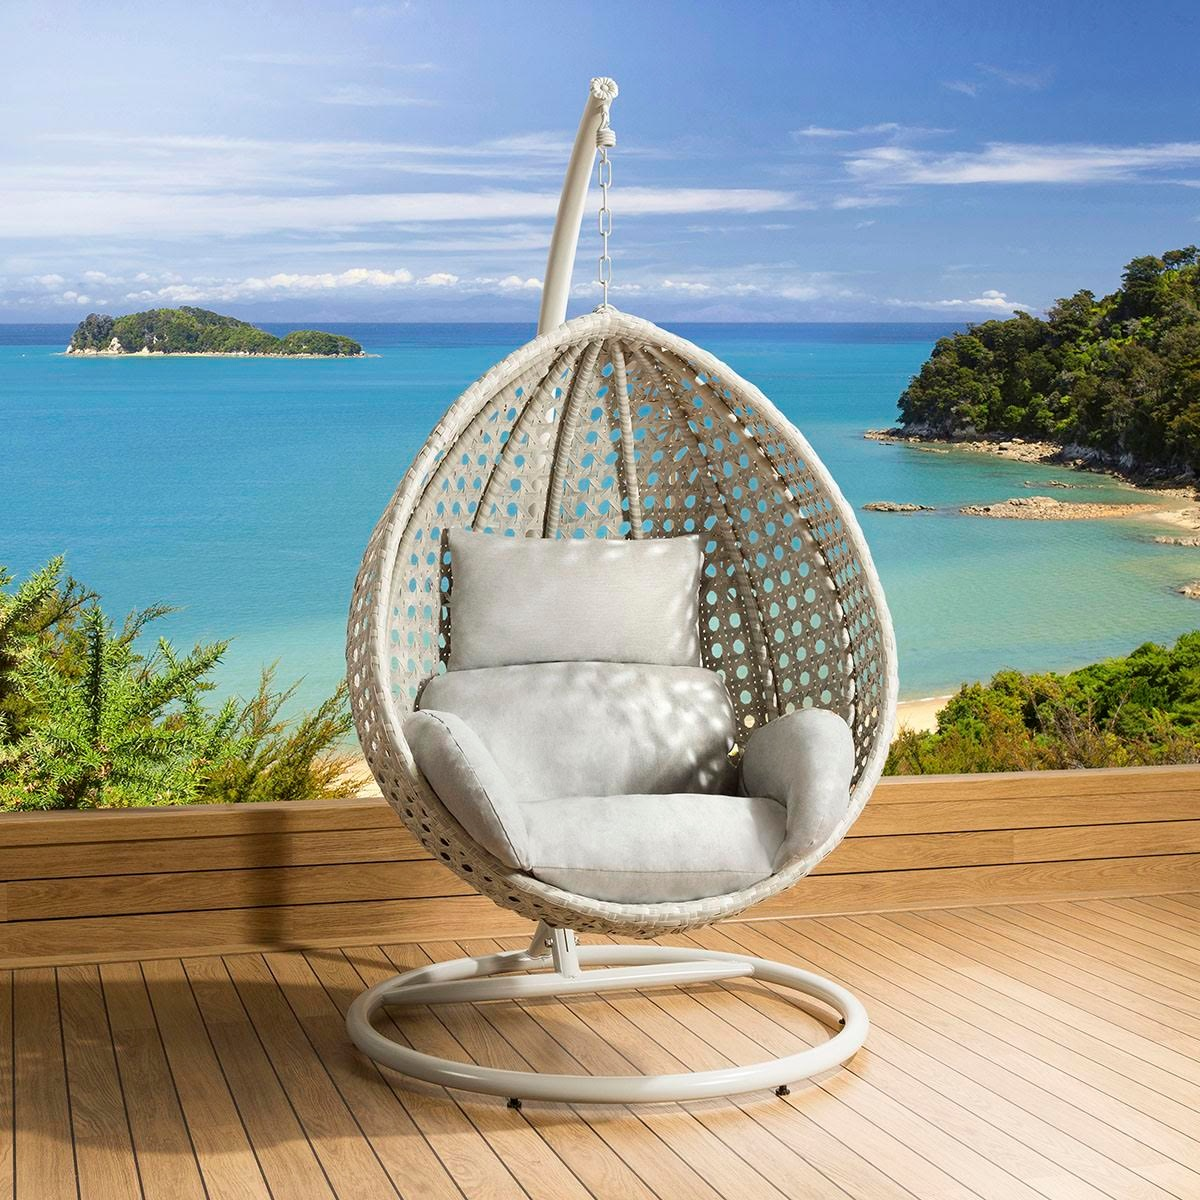 Pod Garden Table And Chair Set: Luxury Outdoor Garden Suspended Egg Pod Cocoon Chair Stone